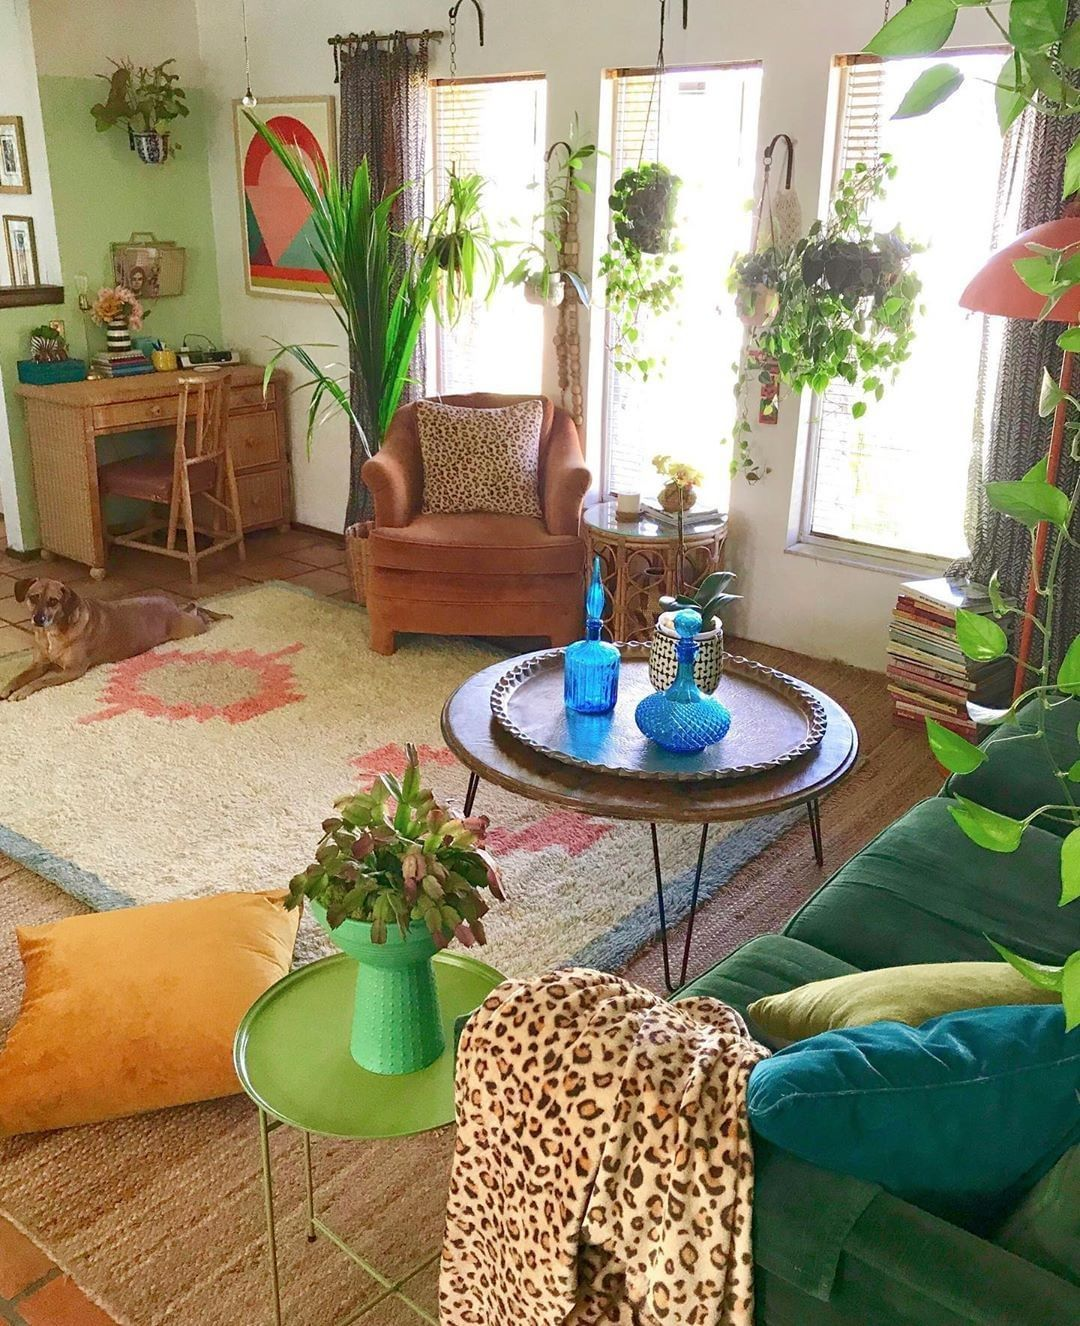 Fy On Instagram Green Glazed Via Lillithortiz Shop The Look By Fo Bohemian Style Living Room Living Room Decor Apartment Bohemian Interior Design